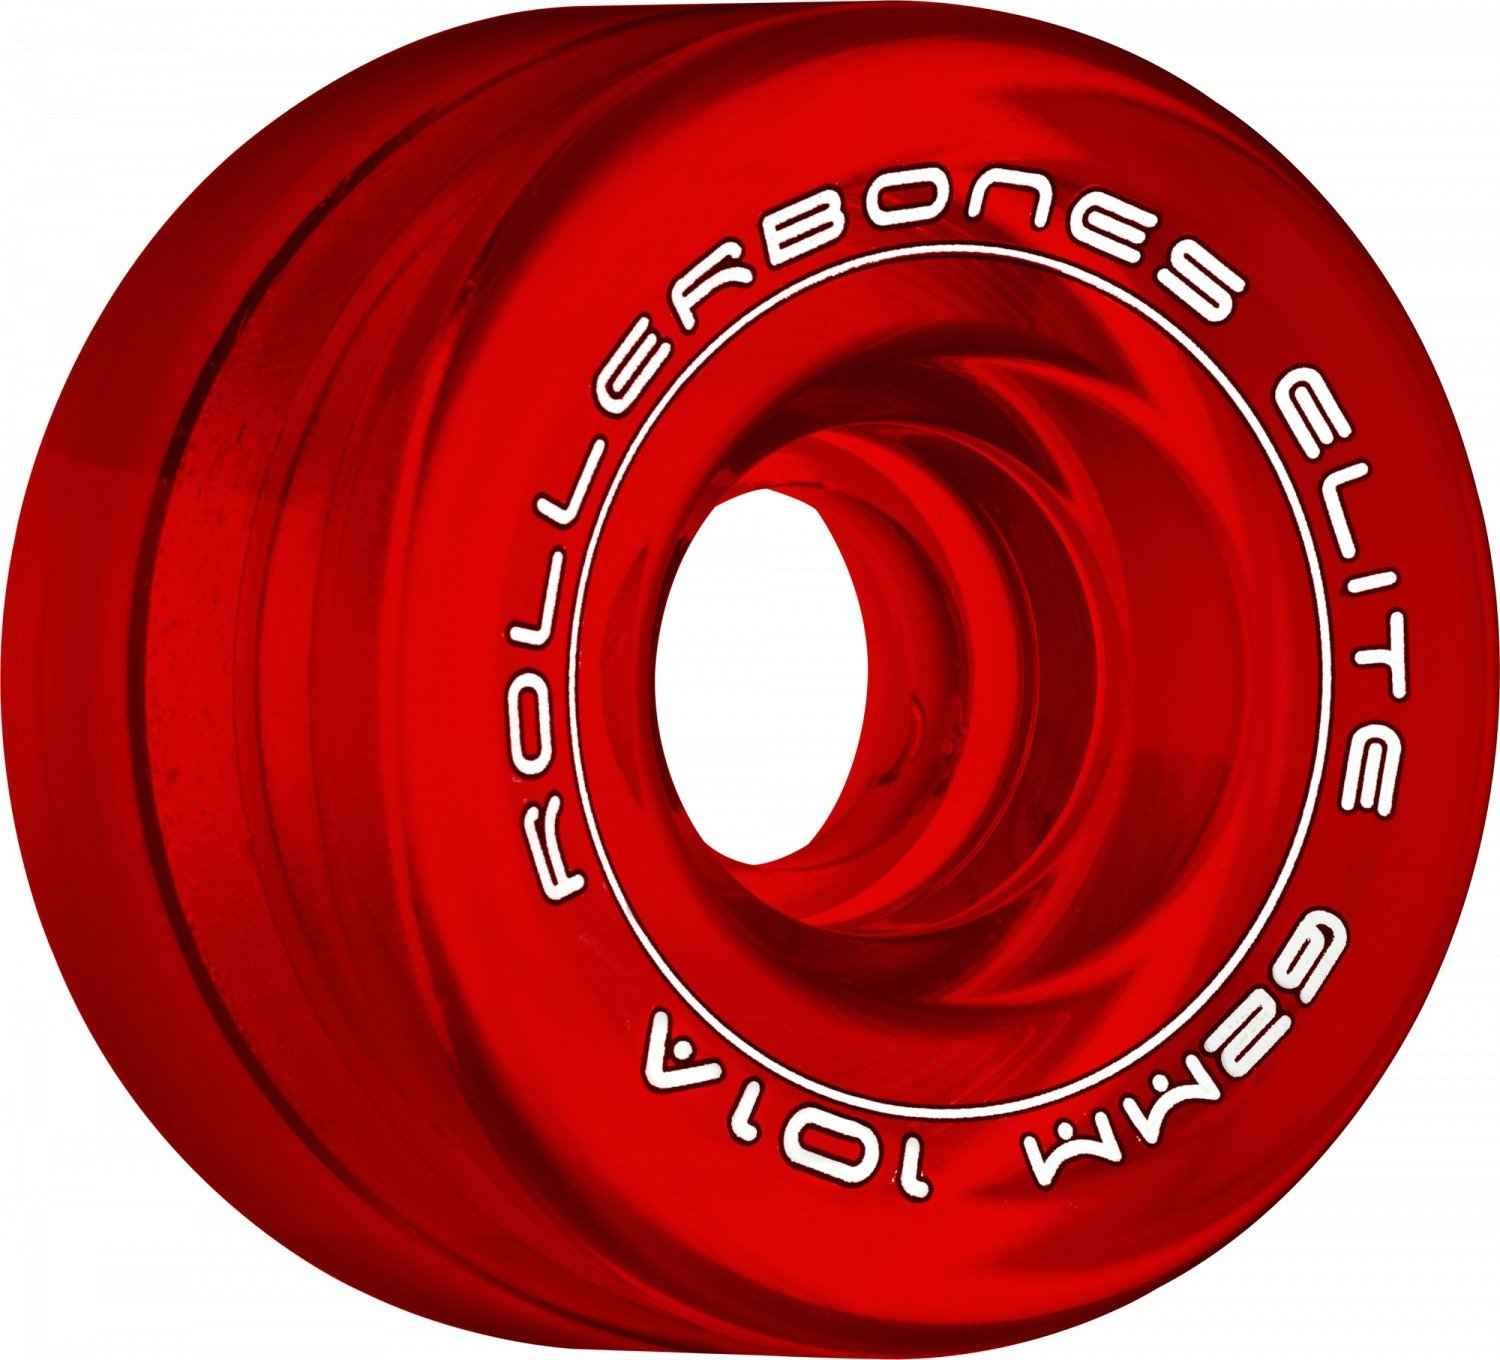 RollerBones Art Elite Competition 101a Roller Skate Wheels - Red - 62mm by RollerBones